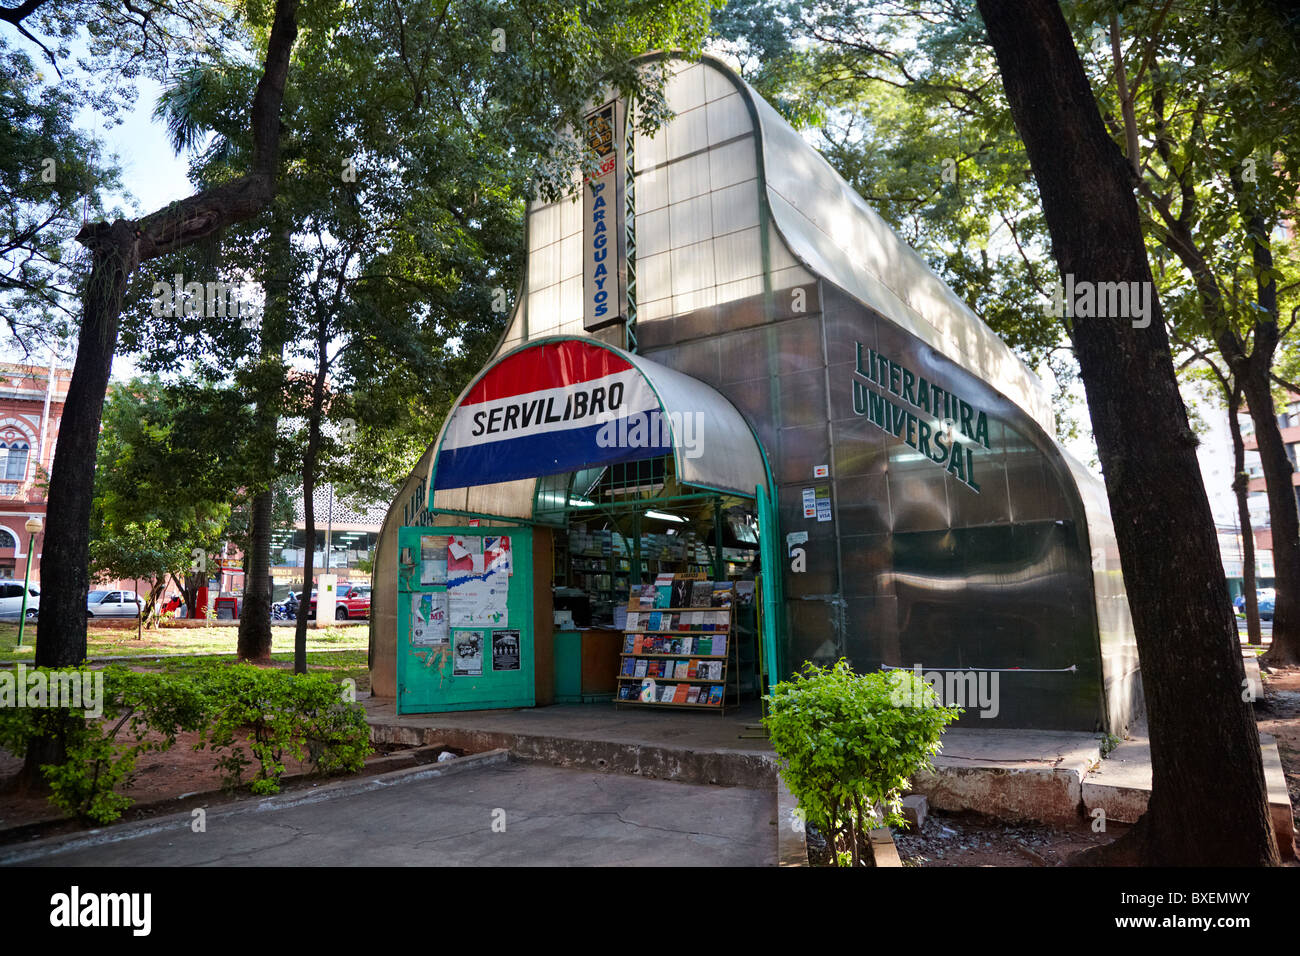 Bookstore Servilibro, Asuncion, Paraguay, South America - Stock Image